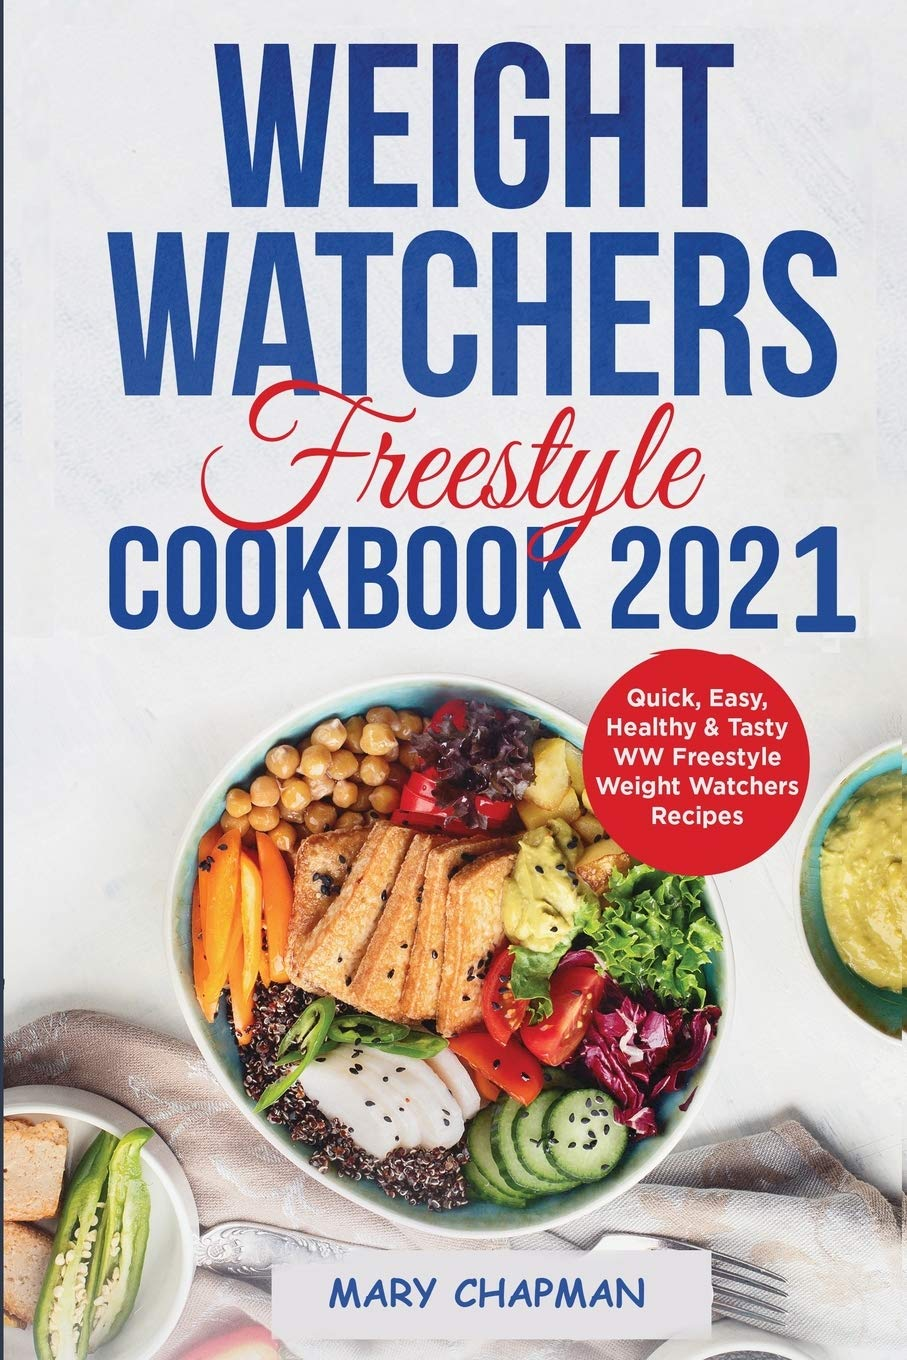 Weight Watchers Freestyle Cookbook 2021: Quick, Easy, Healthy & Tasty WW Freestyle Weight Watchers Recipes 1